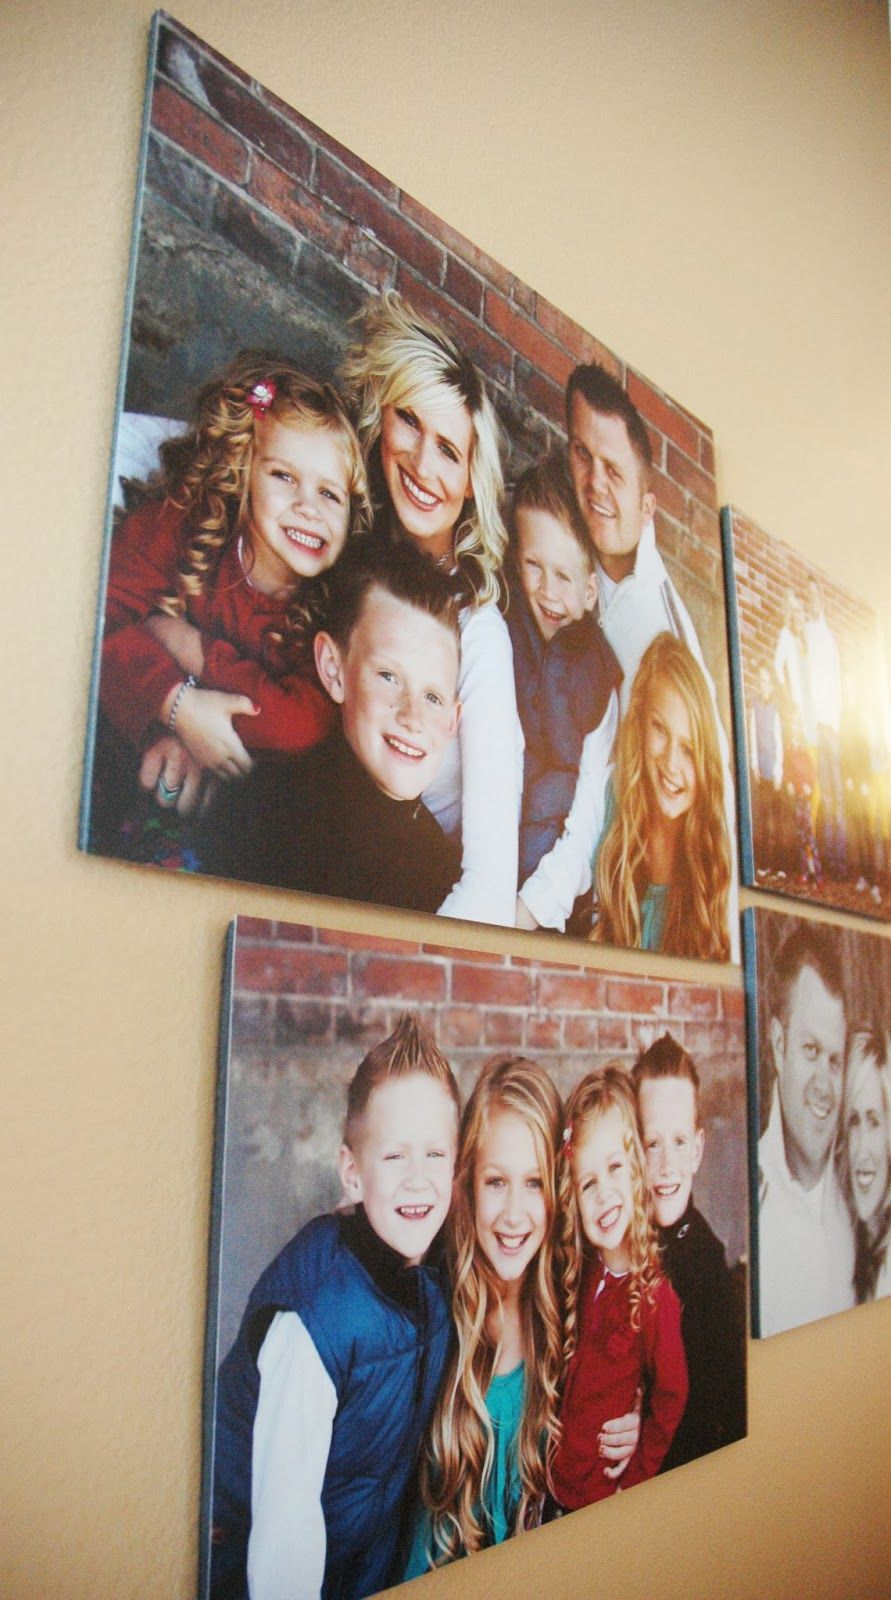 How To Mount Photos On Foam Board Photo Craft Crafts Foam Board Projects